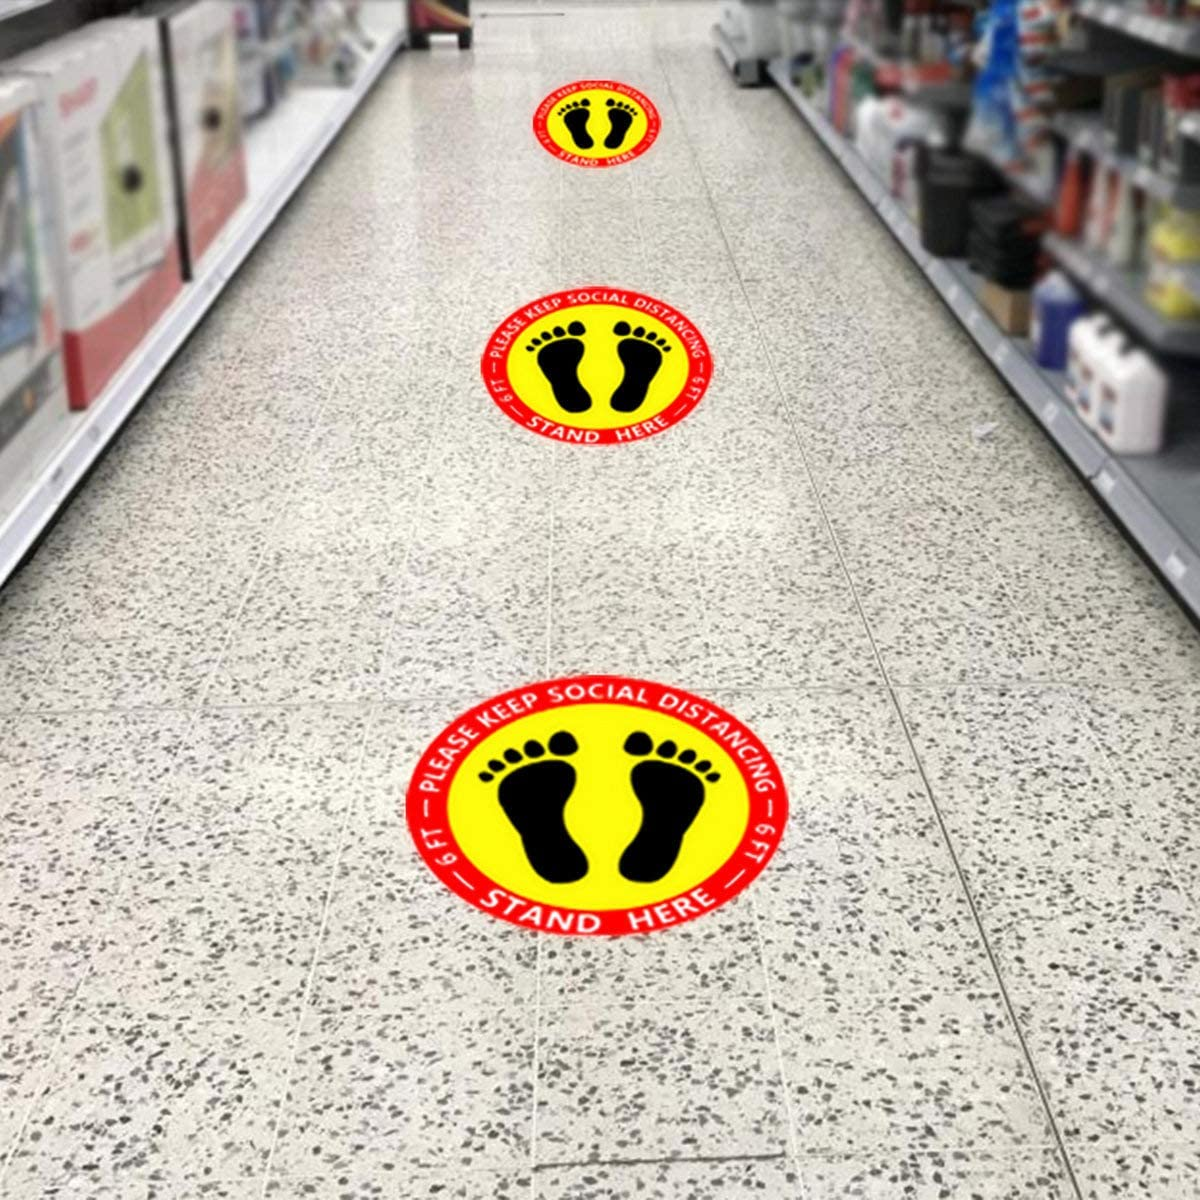 Kimje Social Distancing Floor Decals,15 Pack 12 Social Distancing Floor Sign Marker Stickers,Waterproof,Keep 6 Feet Safety Apart Anti-Slip Sign for Shopping Mall,Market,Grocery Pharmacy,Banks